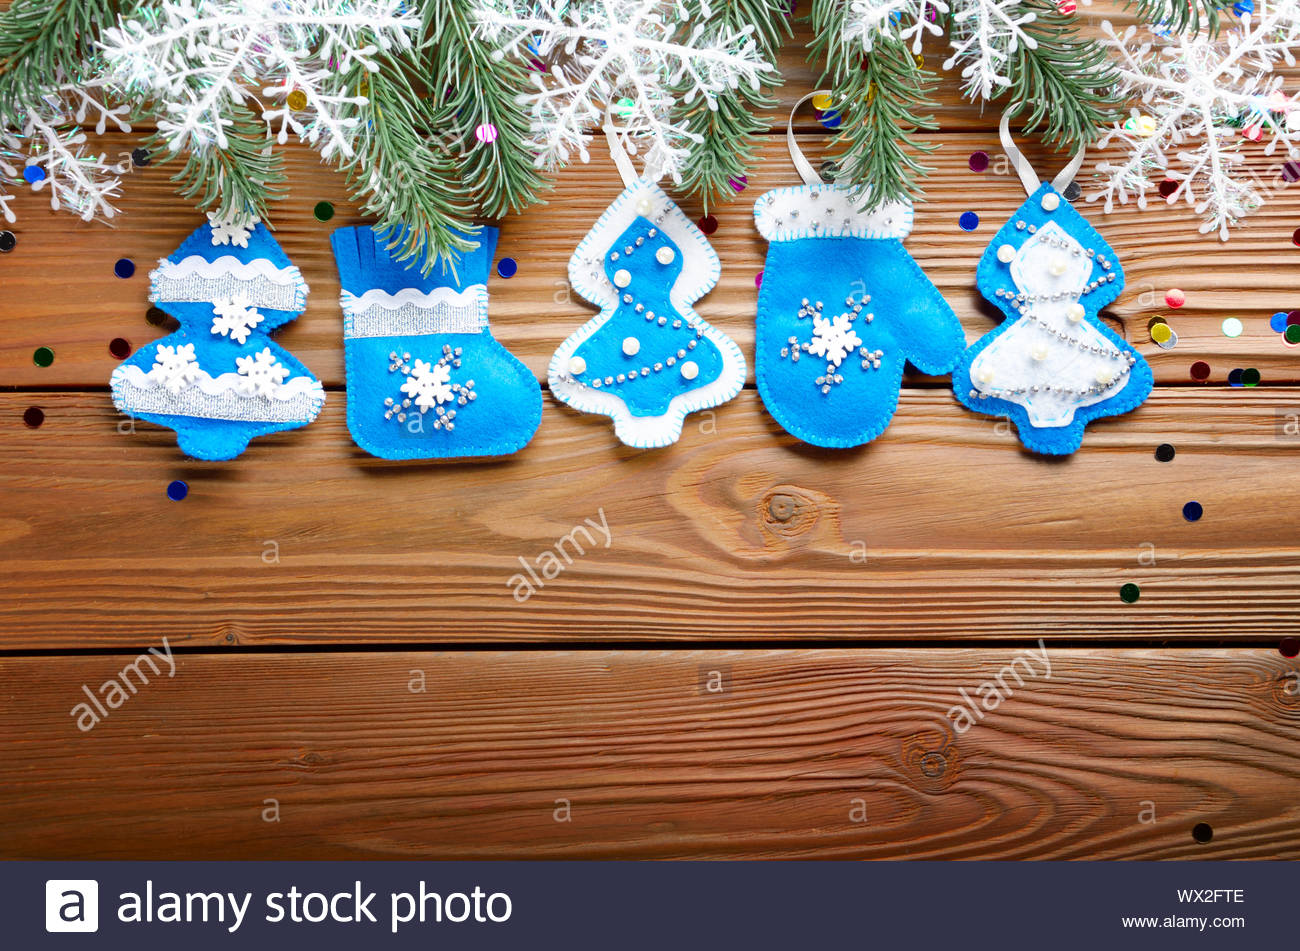 Flat Handmade Rustic Felt Christmas Tree Decorations As Background On Wooden Table Place For Text Stock Photo Alamy